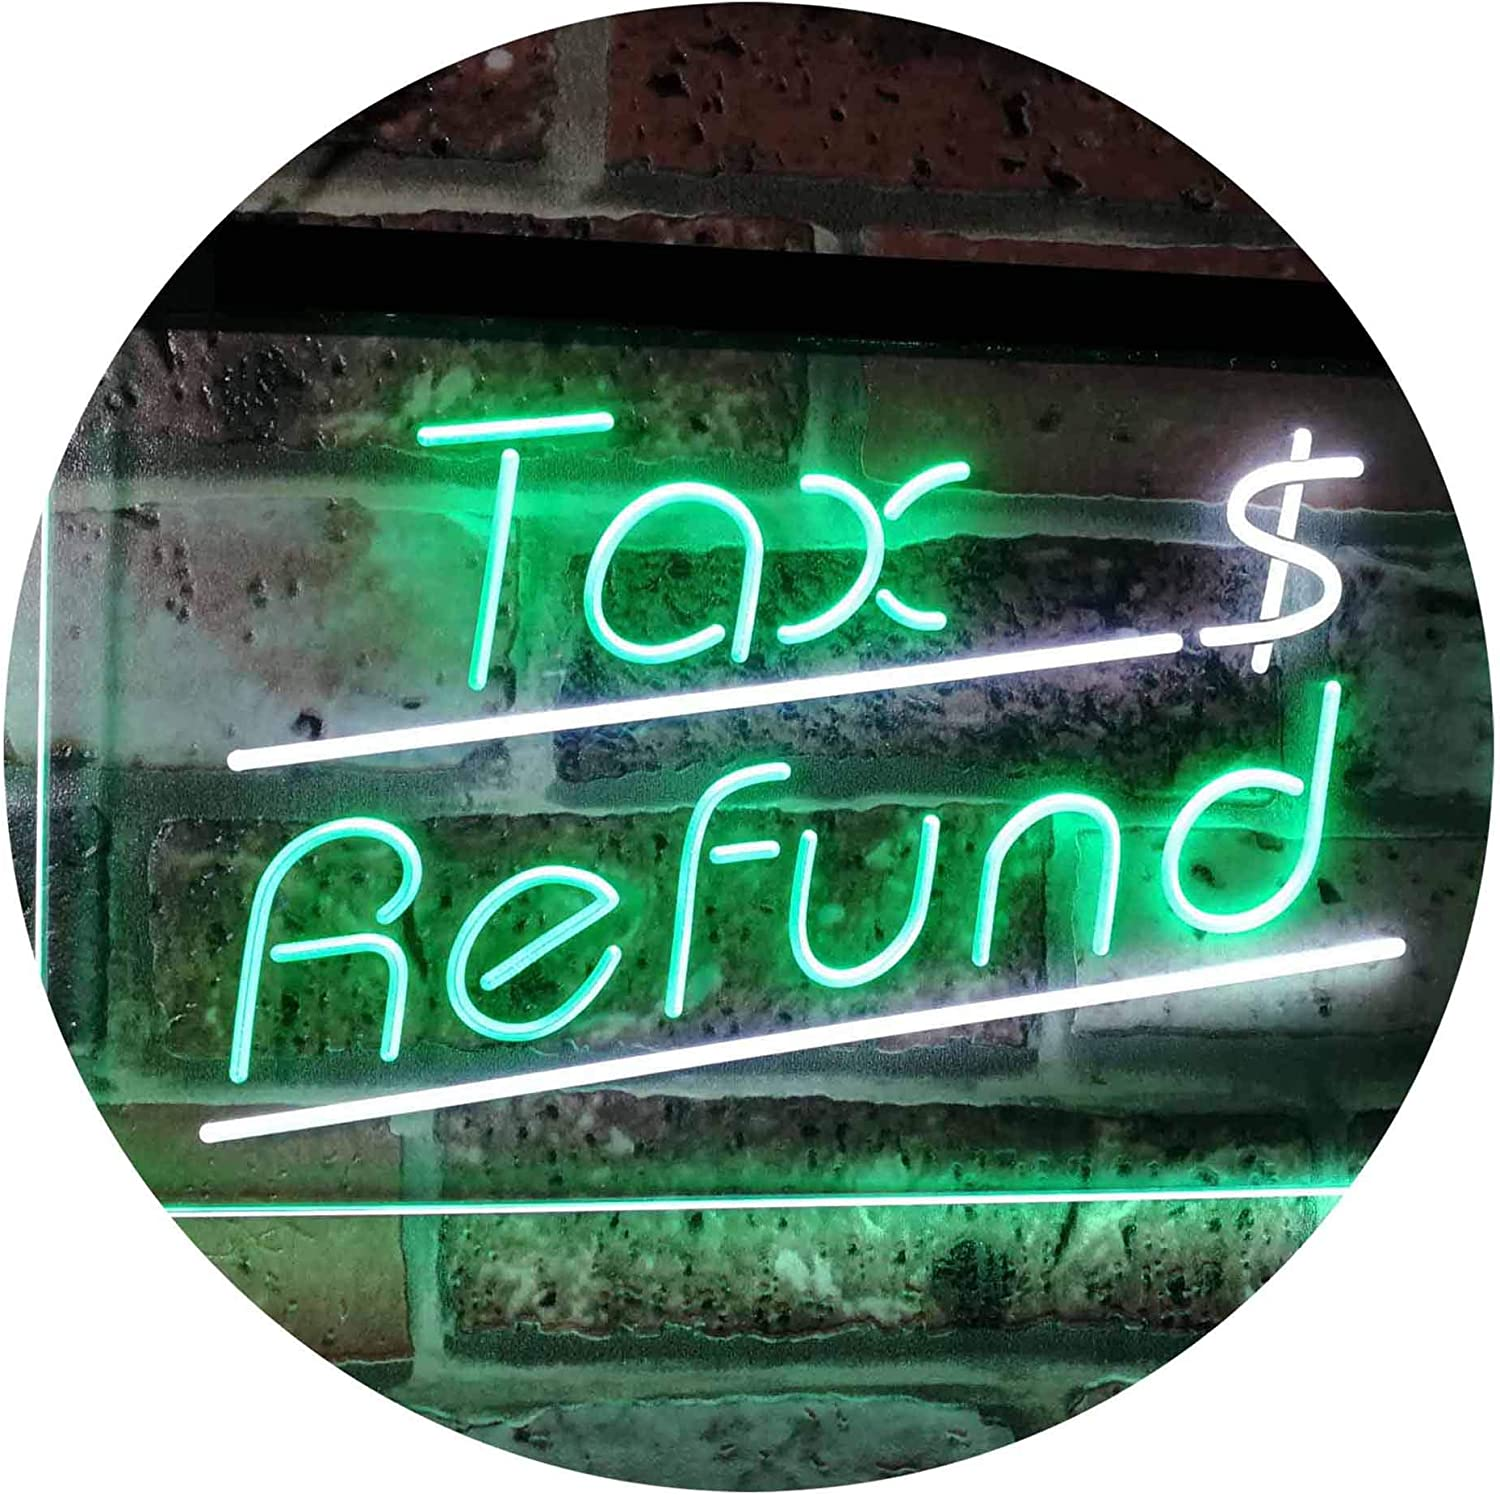 ADVPRO Tax Refund Income Tax Indoor Display Dual Farbe LED Barlicht Neonlicht Lichtwerbung Neon Sign Weiß & Grün 400mm x 300mm st6s43-i2976-wg